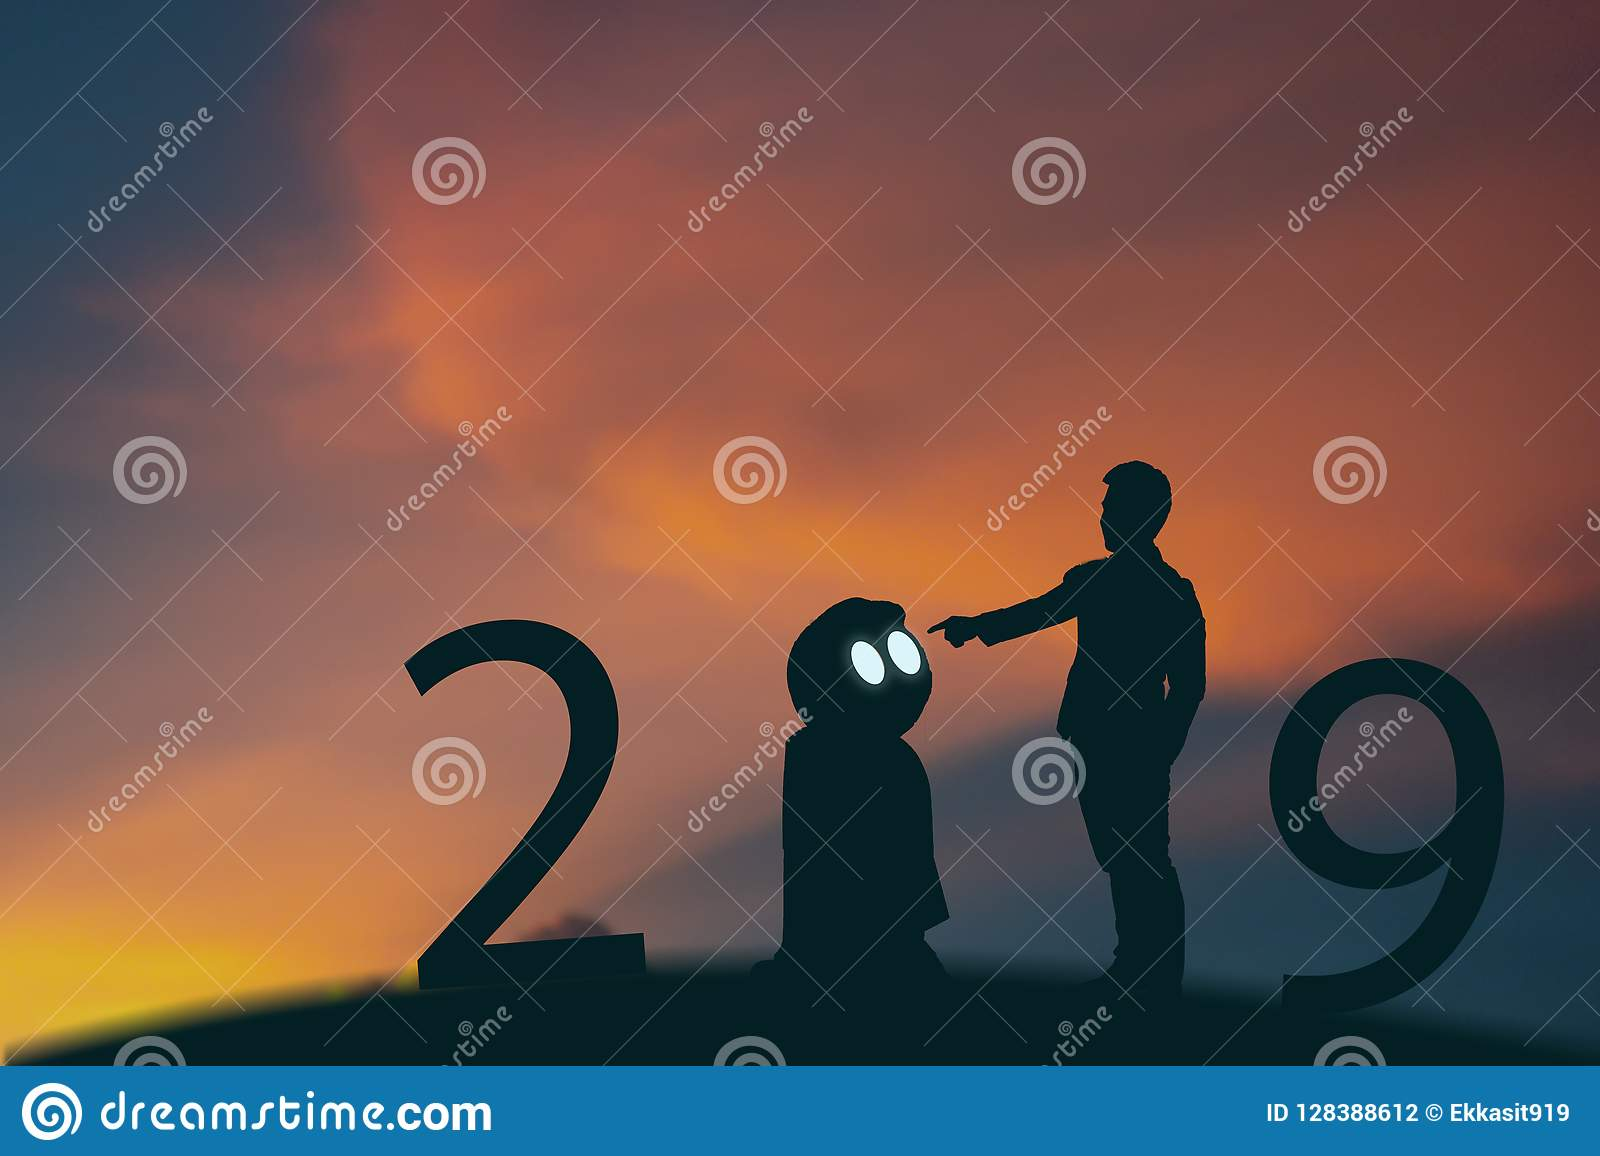 2019 year artificial intelligence or ai futuristic concept, Silhouette Business man stand and point hand to command or control as